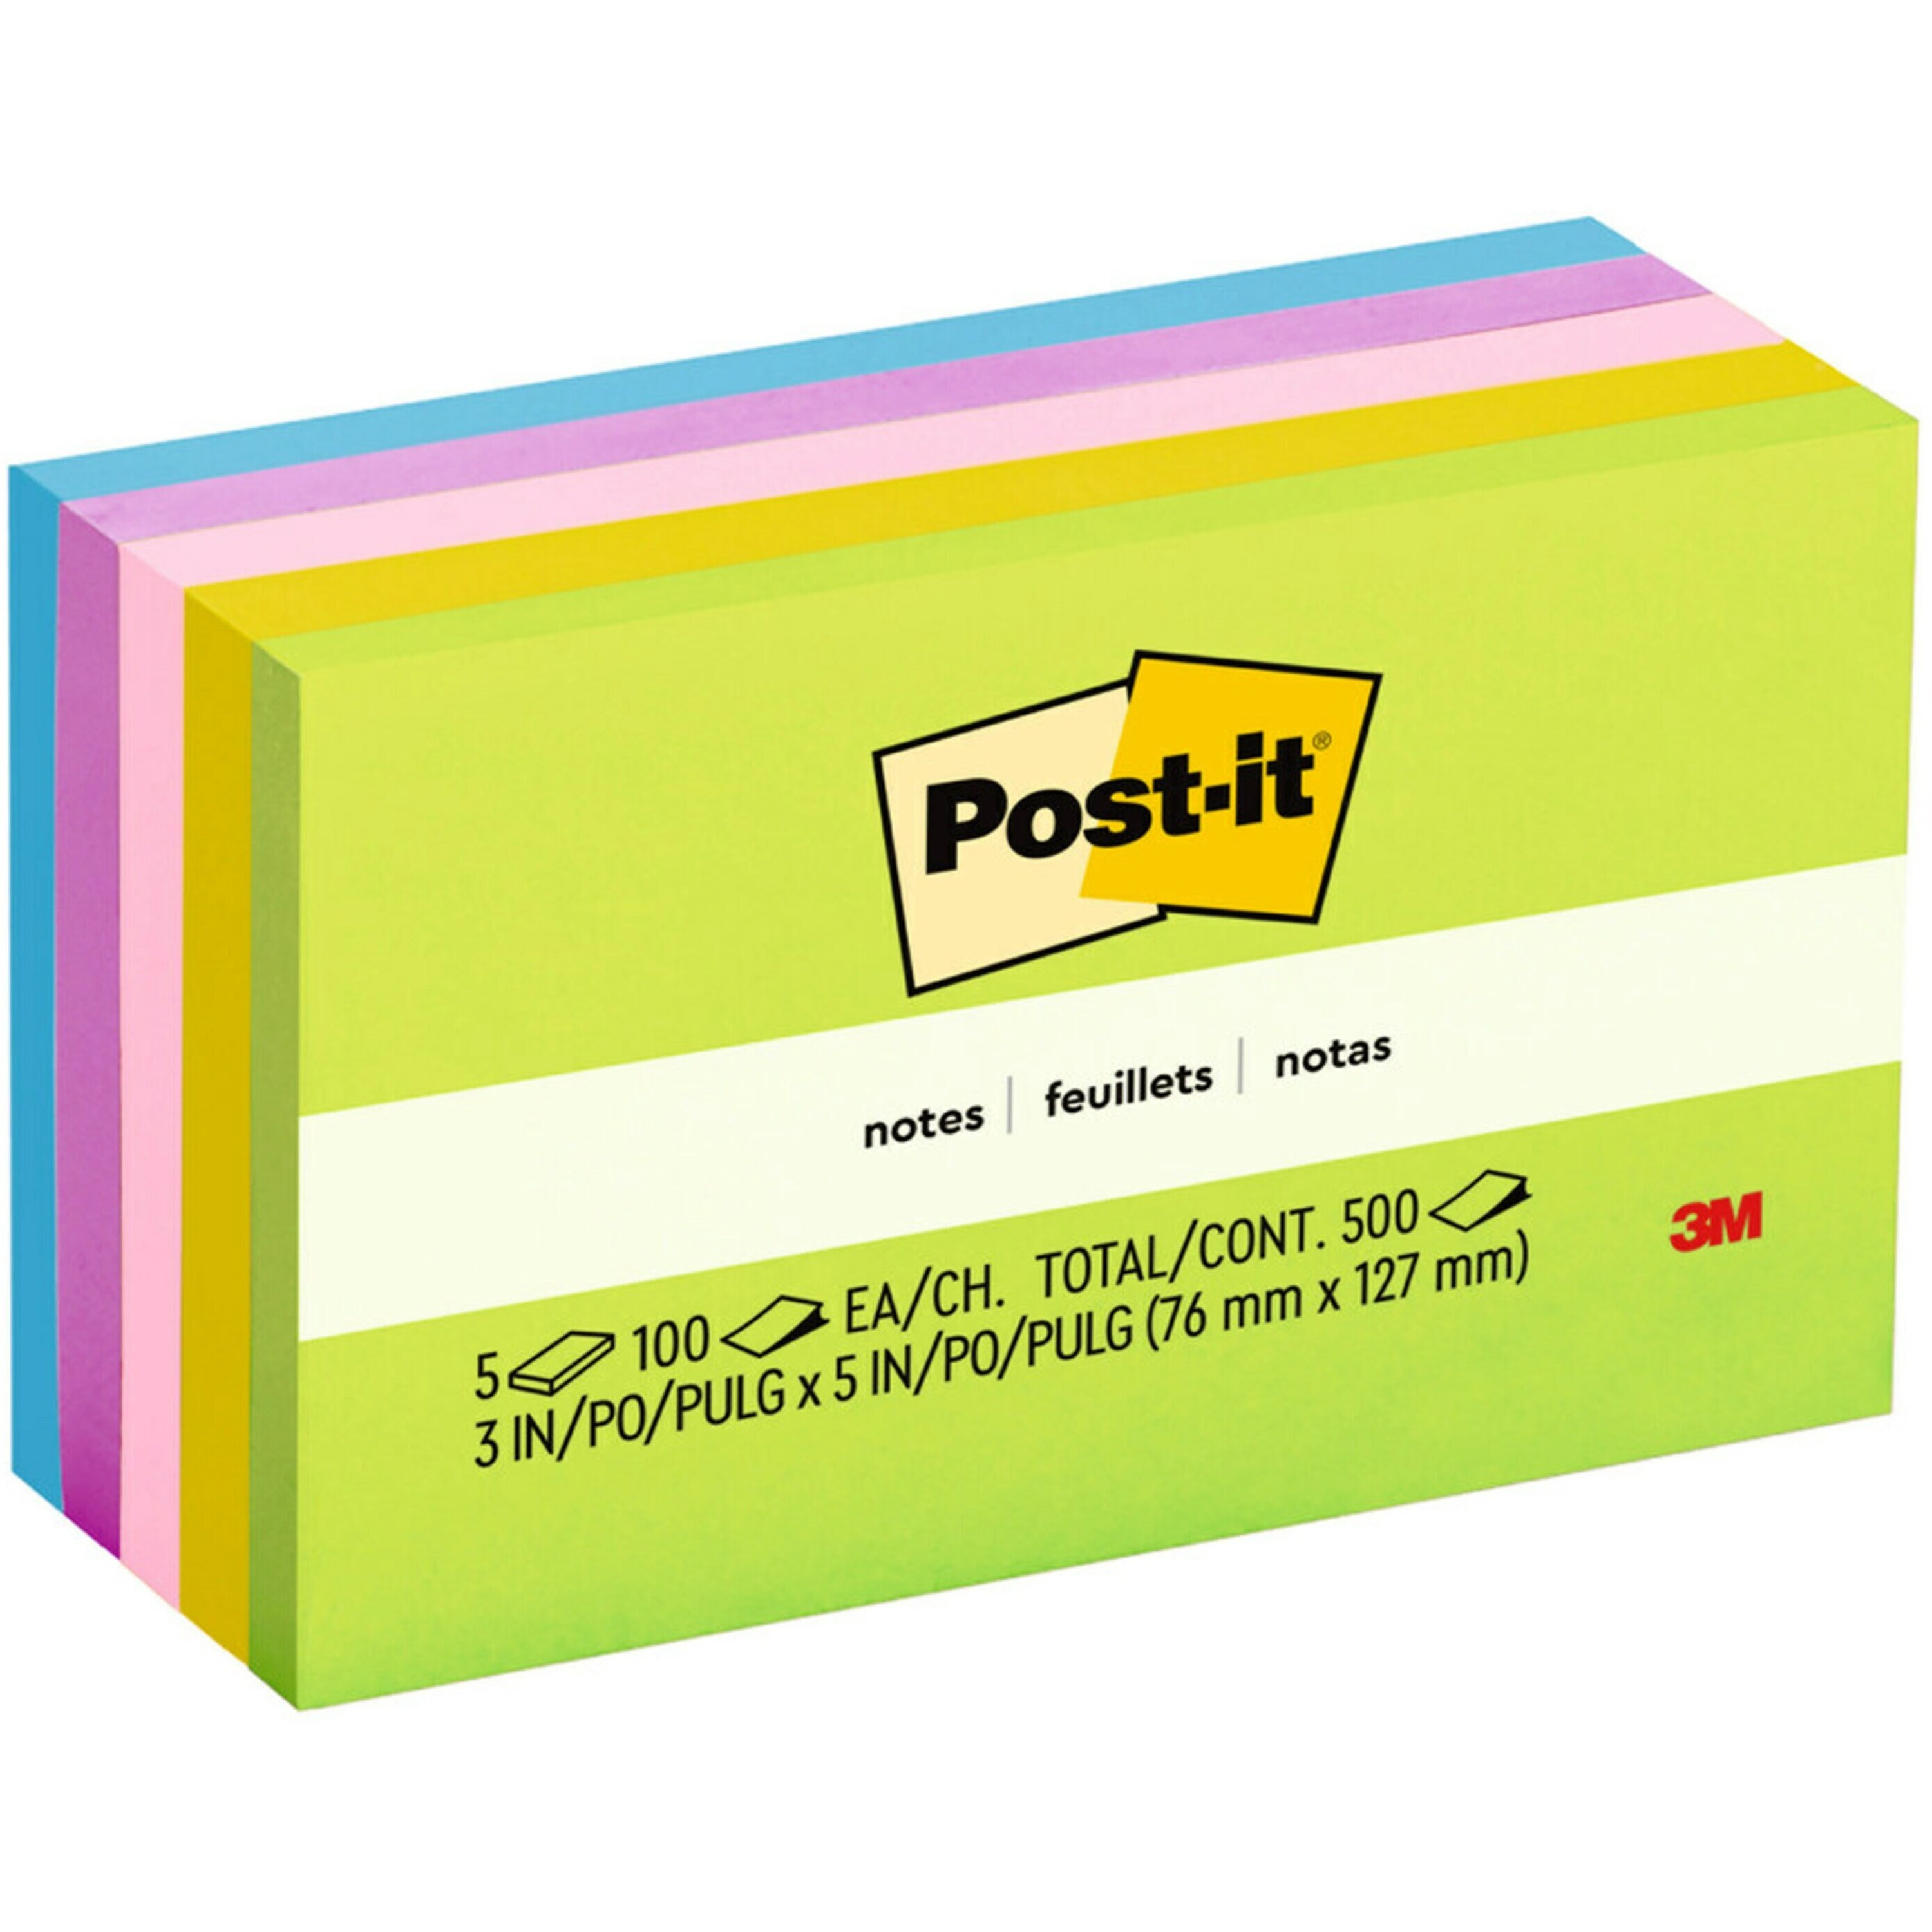 3M POST-IT Notes 655 Self Adhesive Message Pads 73mm x 123mm Yellow Each 36A035